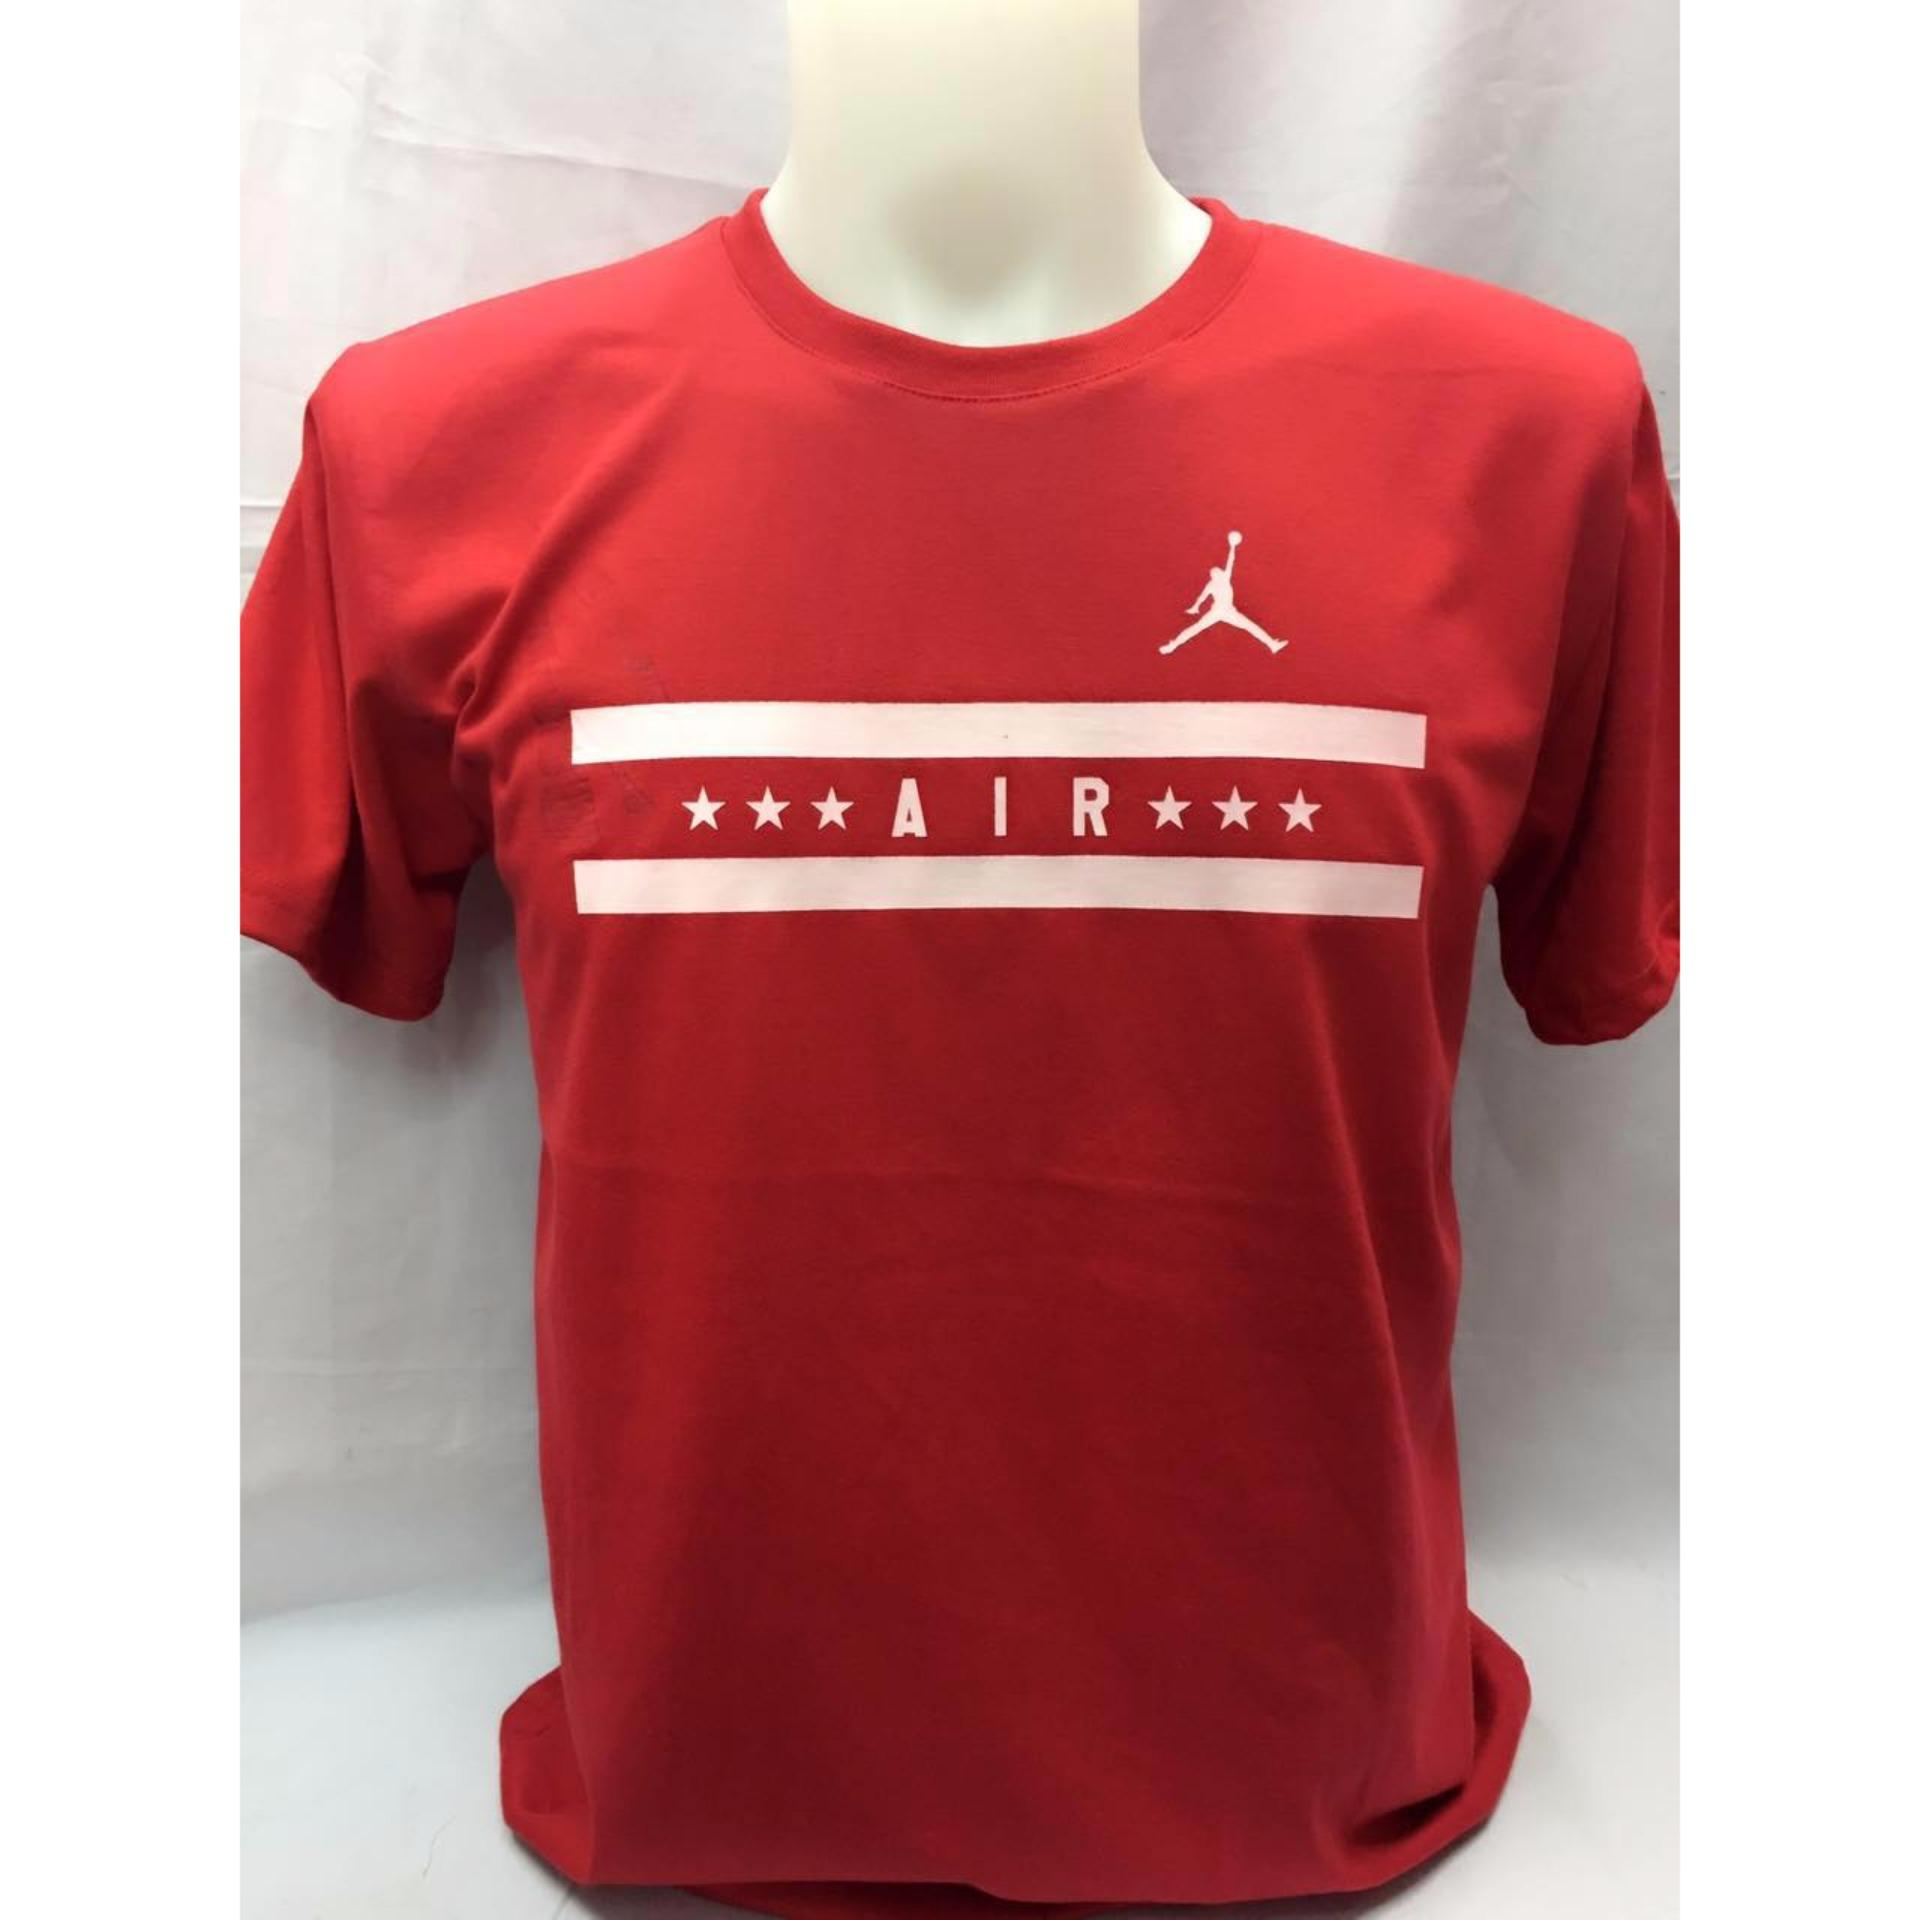 b6e27c9af87e37 Nike Jordan T Shirt Philippines – EDGE Engineering and Consulting ...